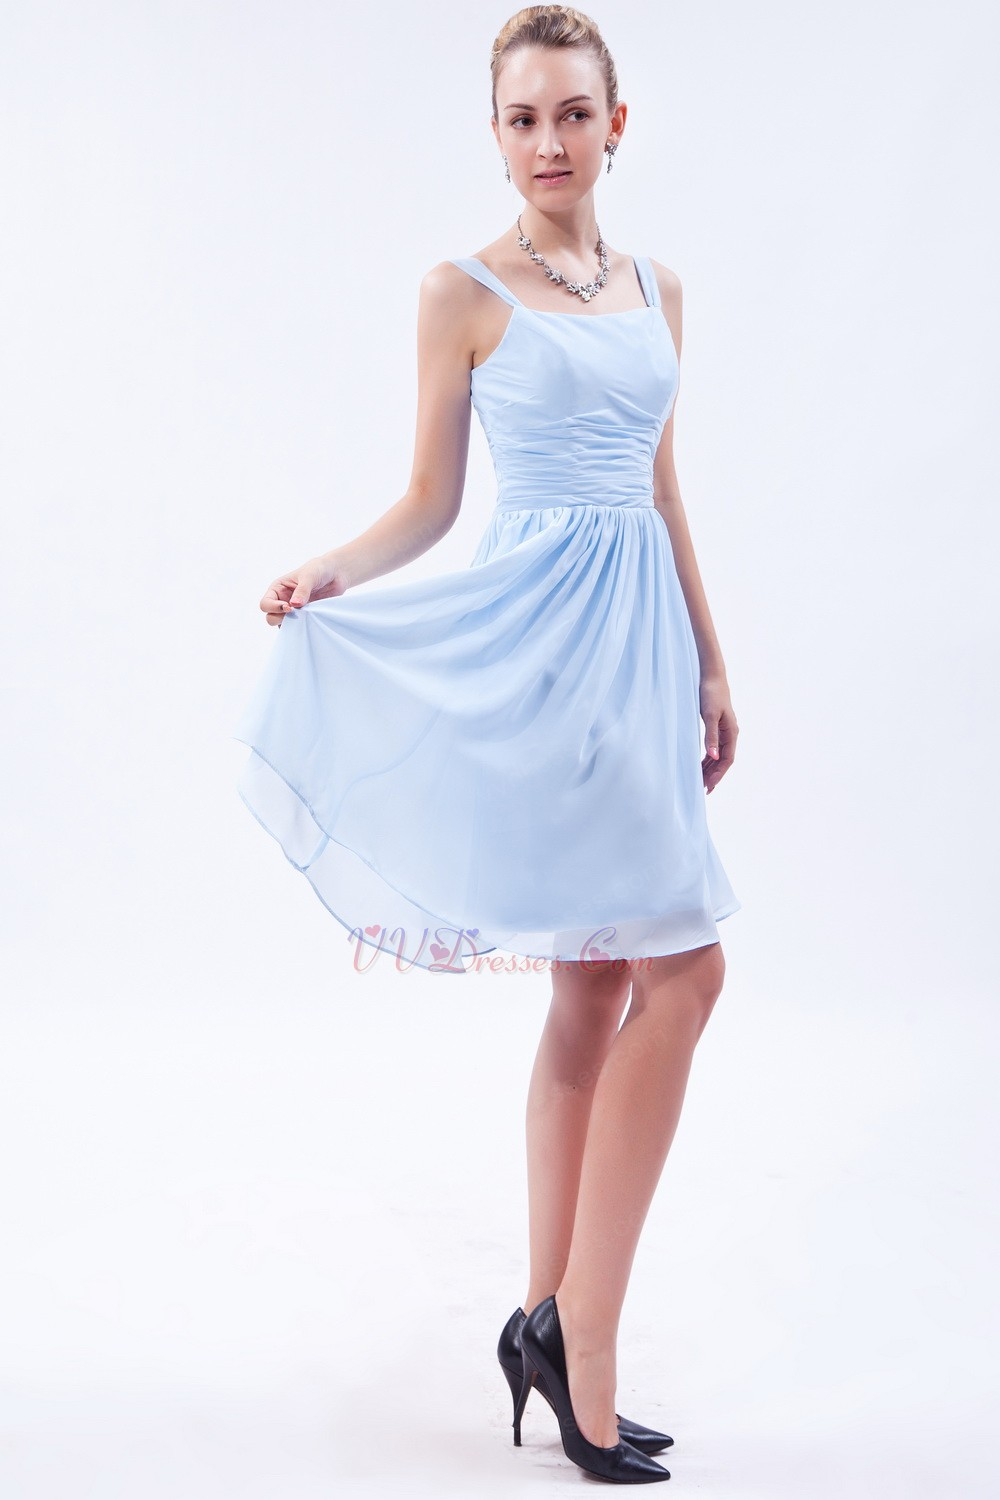 Square Baby Blue Short Bridesmaid Dress Under 100 Dollars